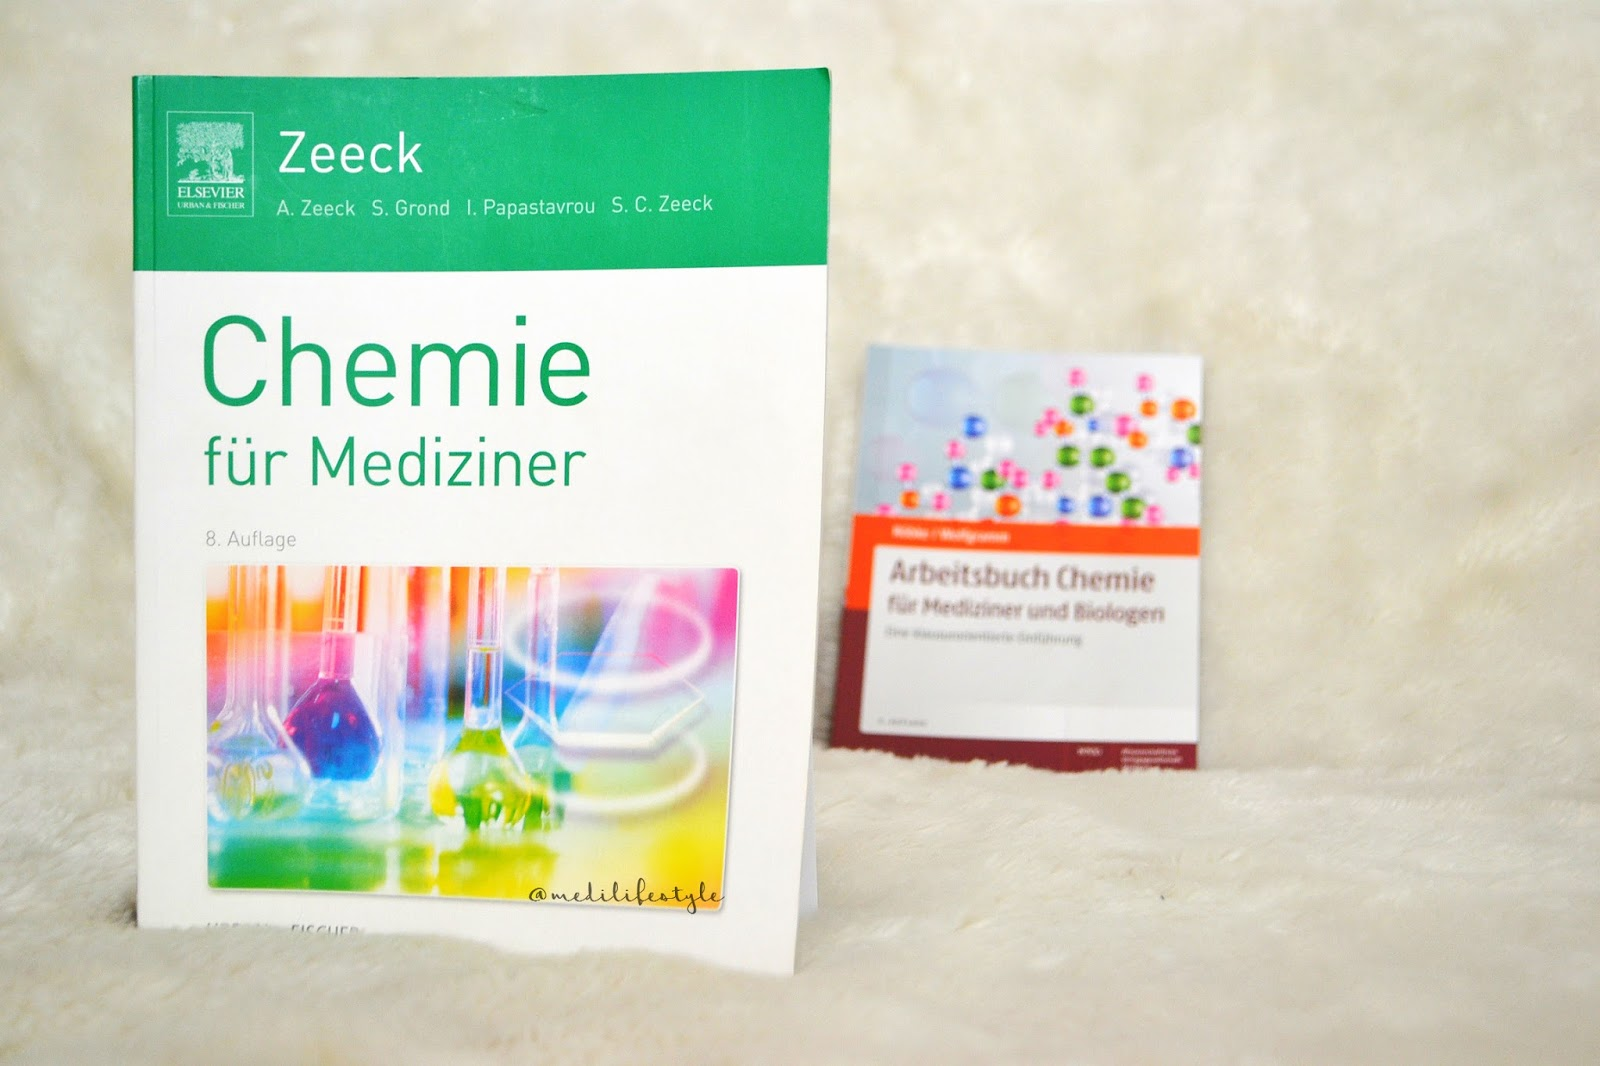 Medilifestyle: How to survive: Chemie